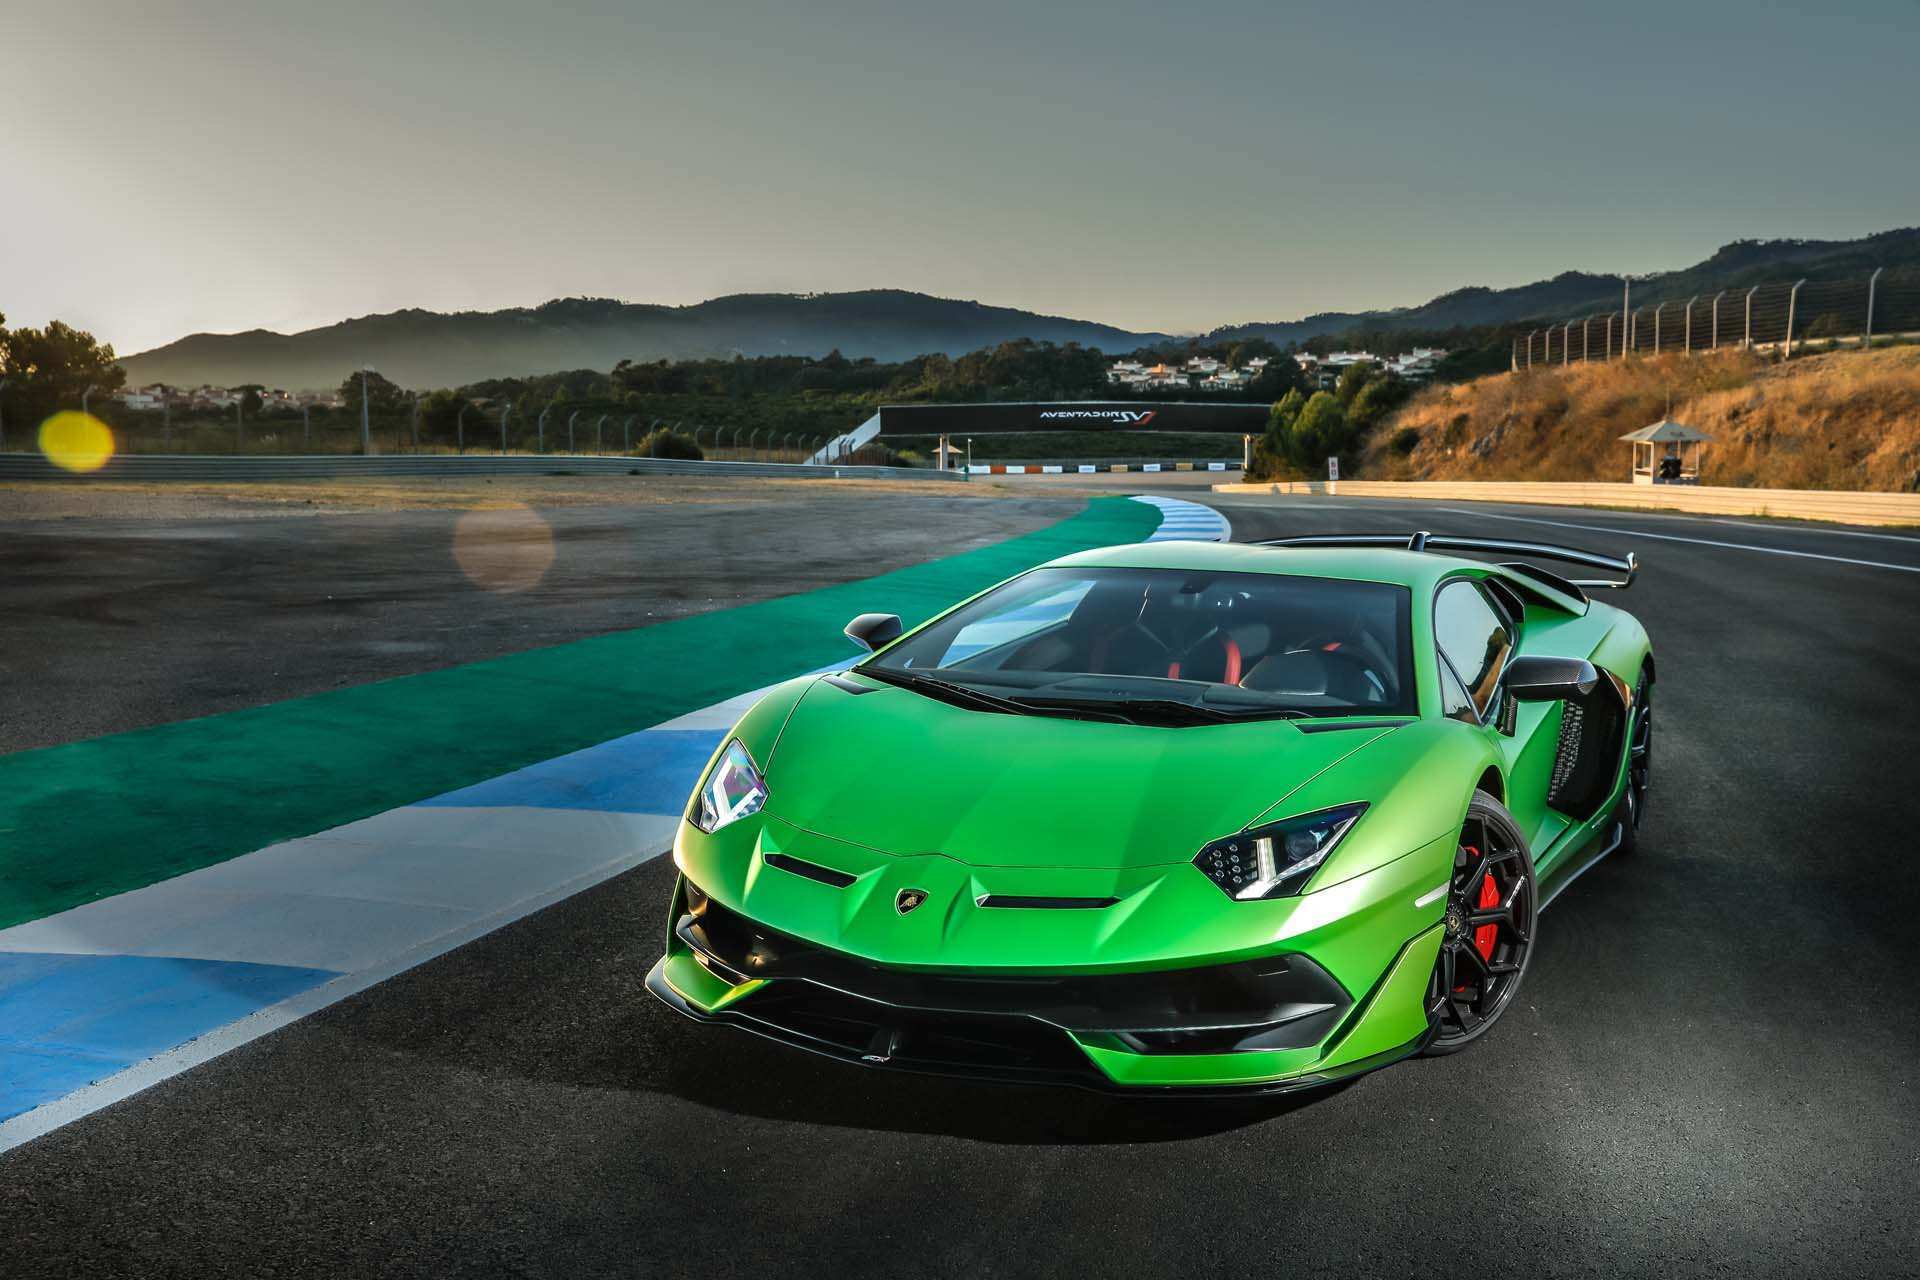 68 Best Review 2020 Lamborghini Aventador Images for 2020 Lamborghini Aventador